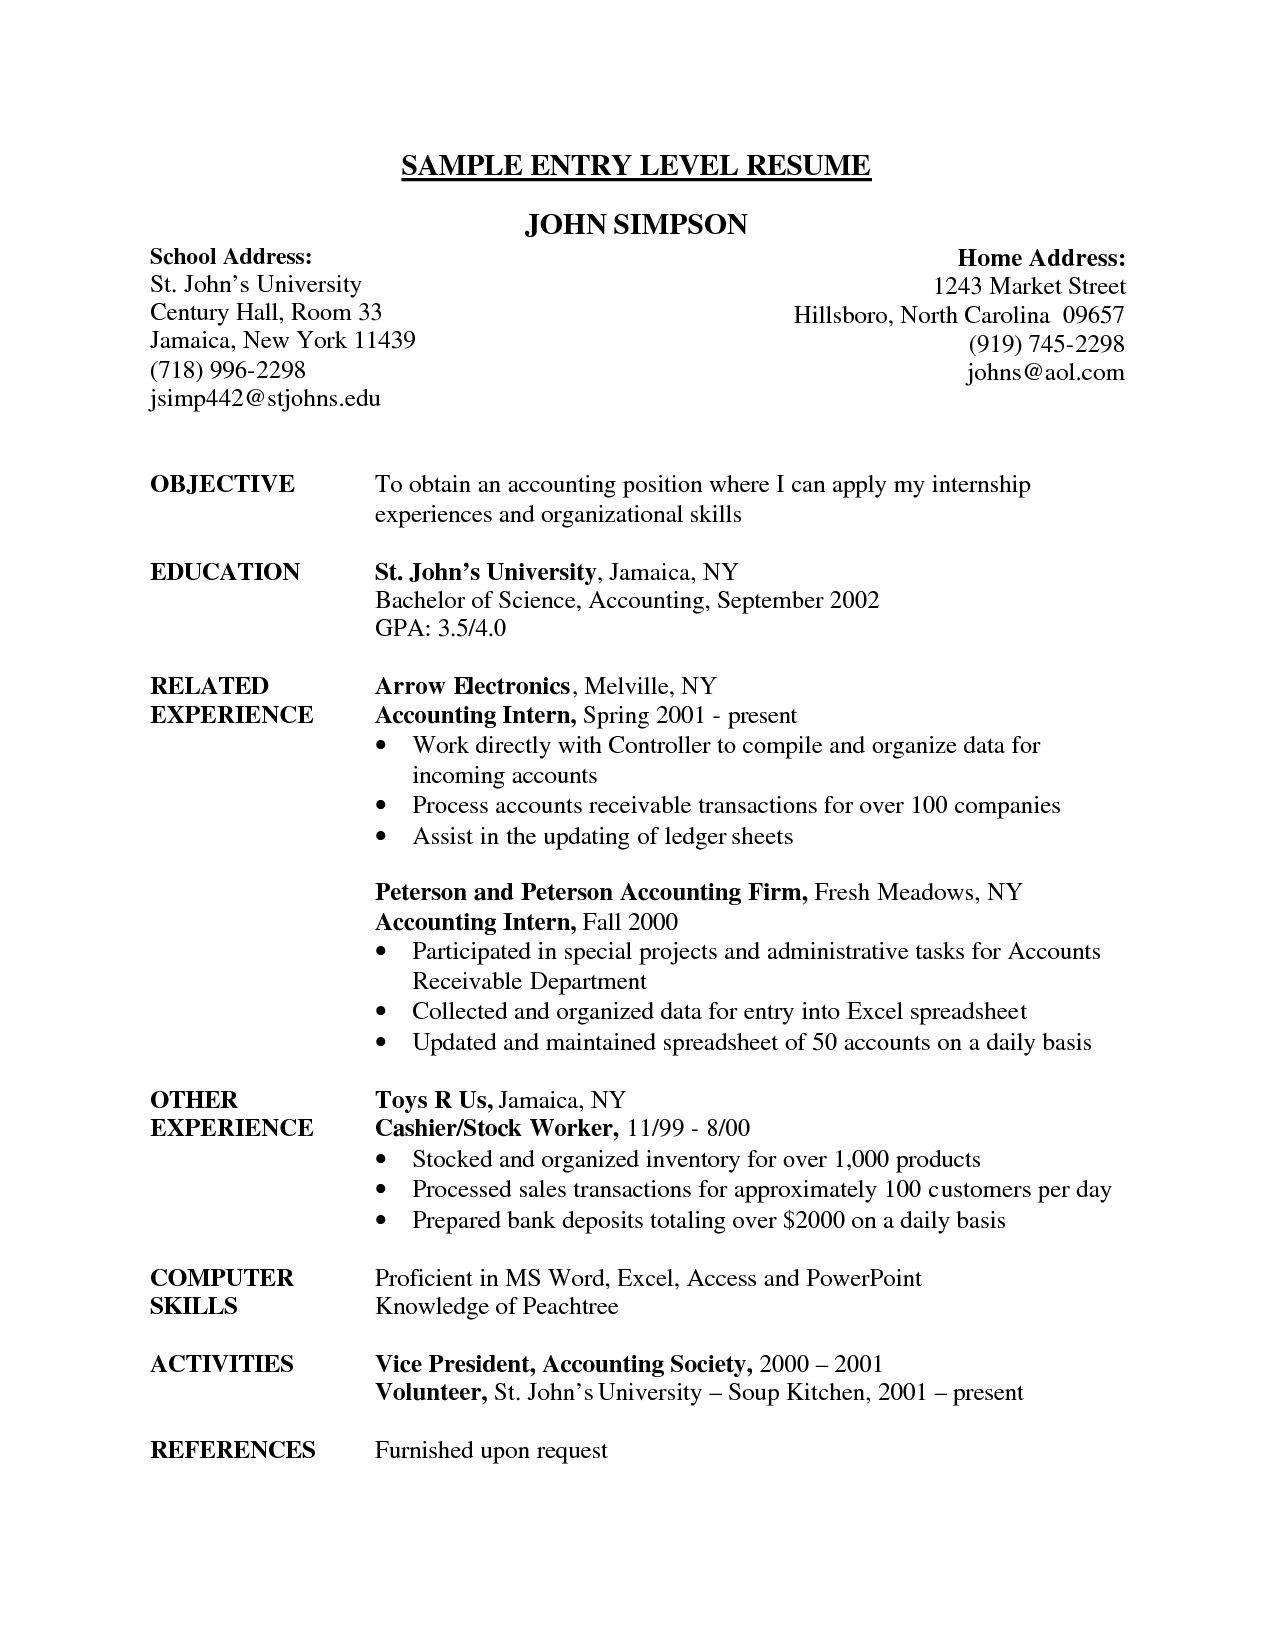 Resume Examples Entry Level | Resume Examples | Pinterest | Resume ...